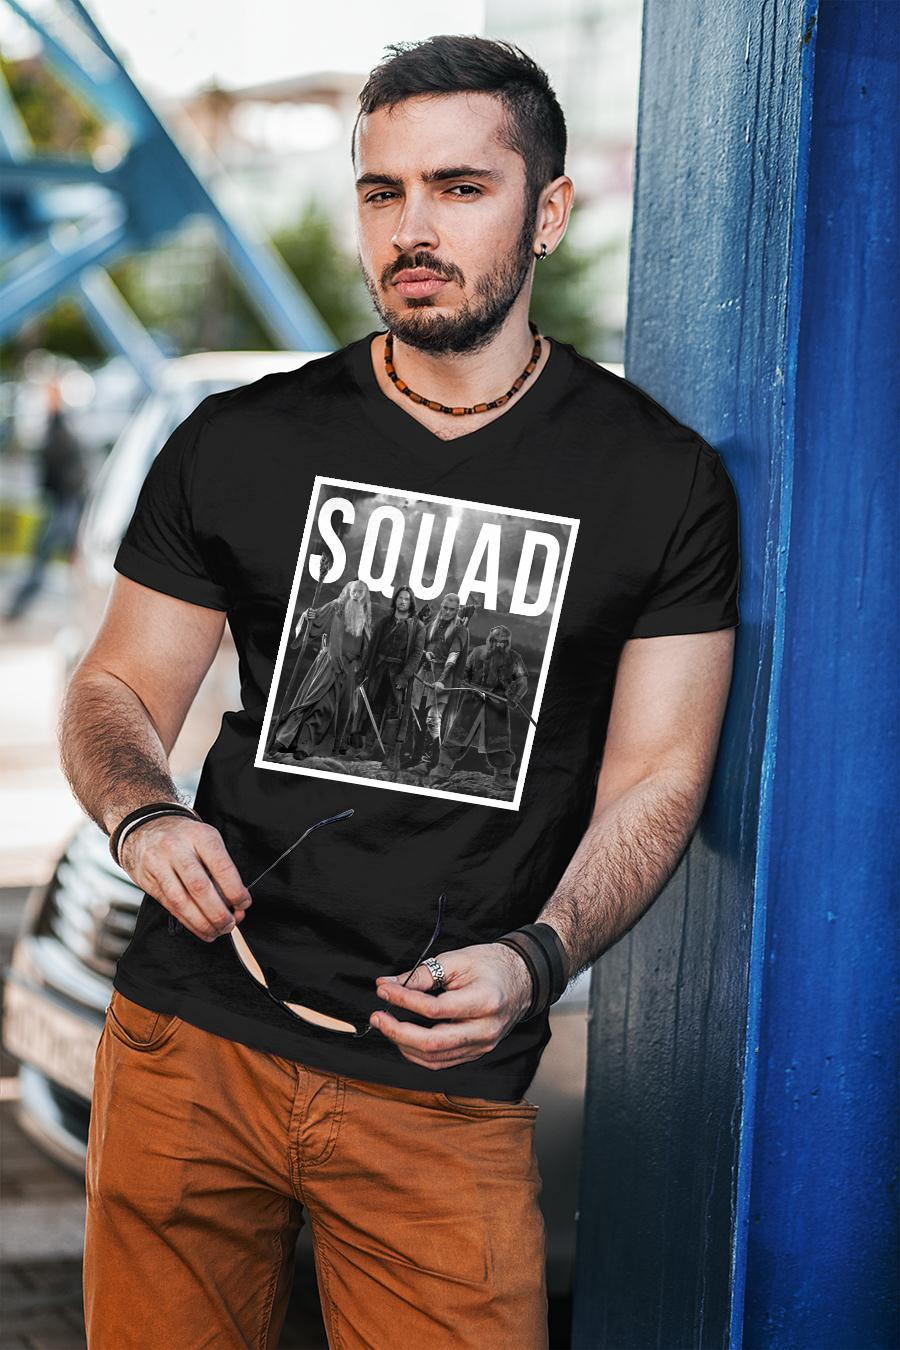 The Lord of the Rings squad shirt unisex